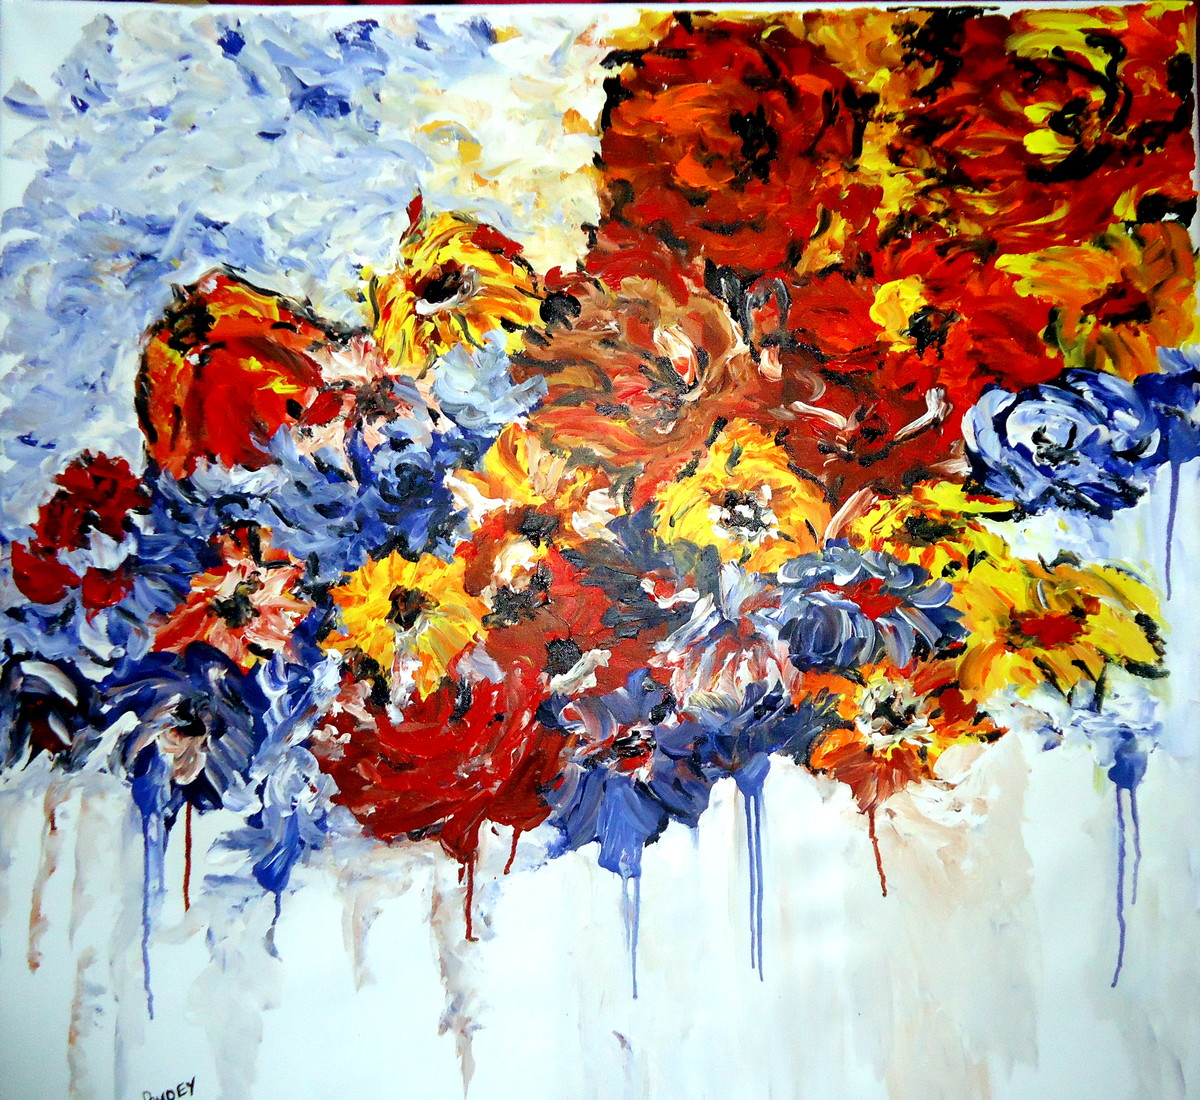 love blooming in nature series 1 by shivangi Pandey, Impressionism Painting, Acrylic on Canvas, Cyan color